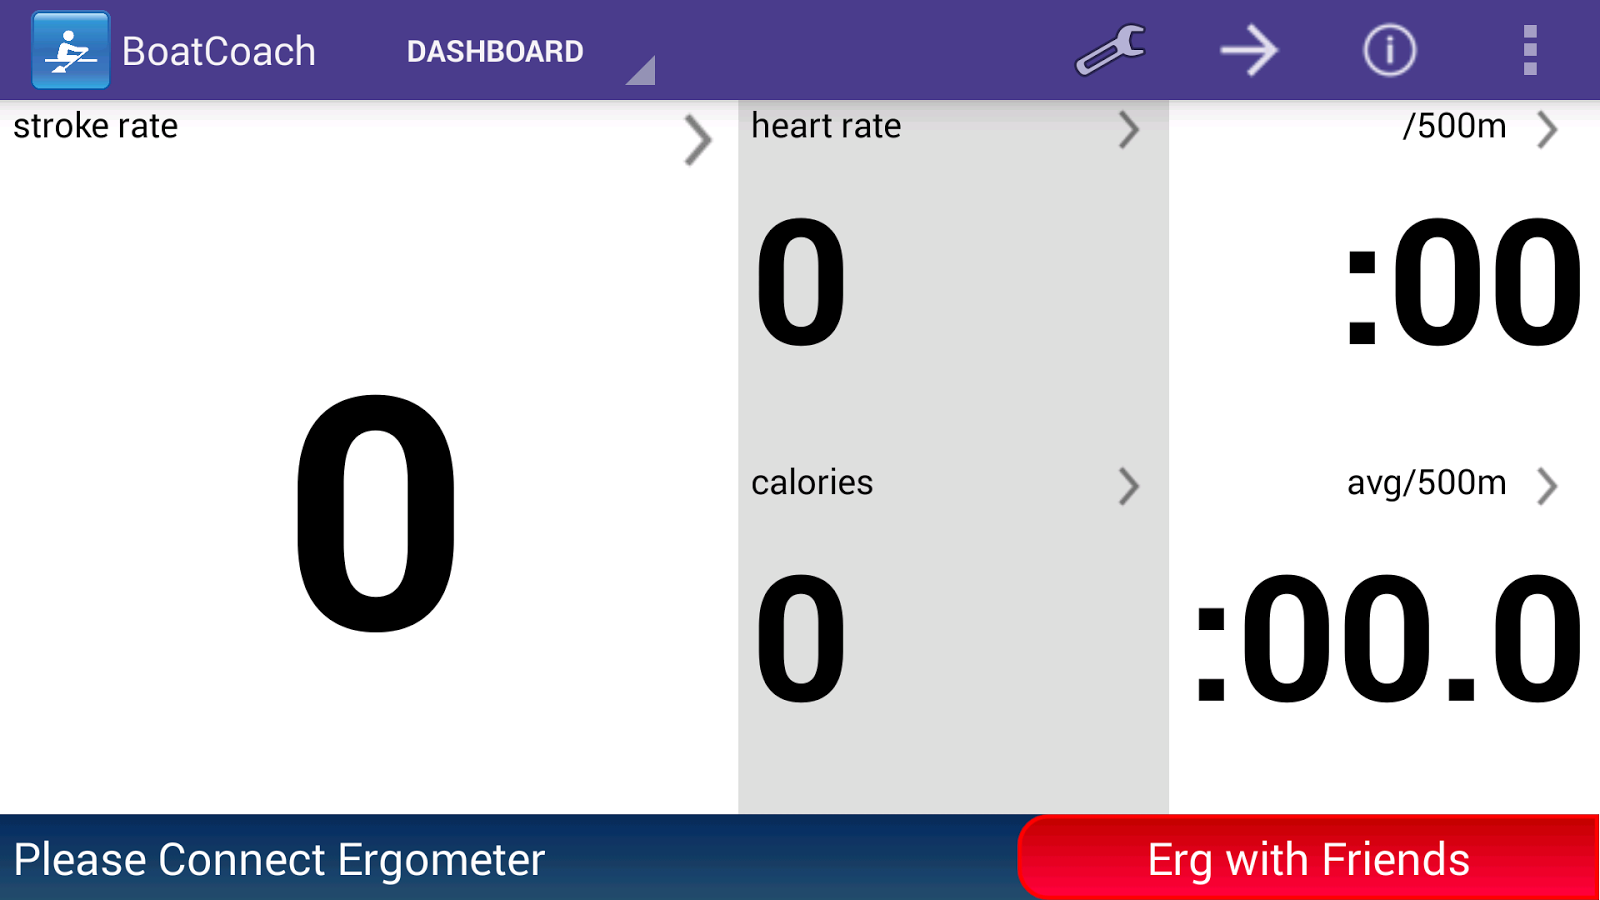 BoatCoach for rowing & erging - screenshot